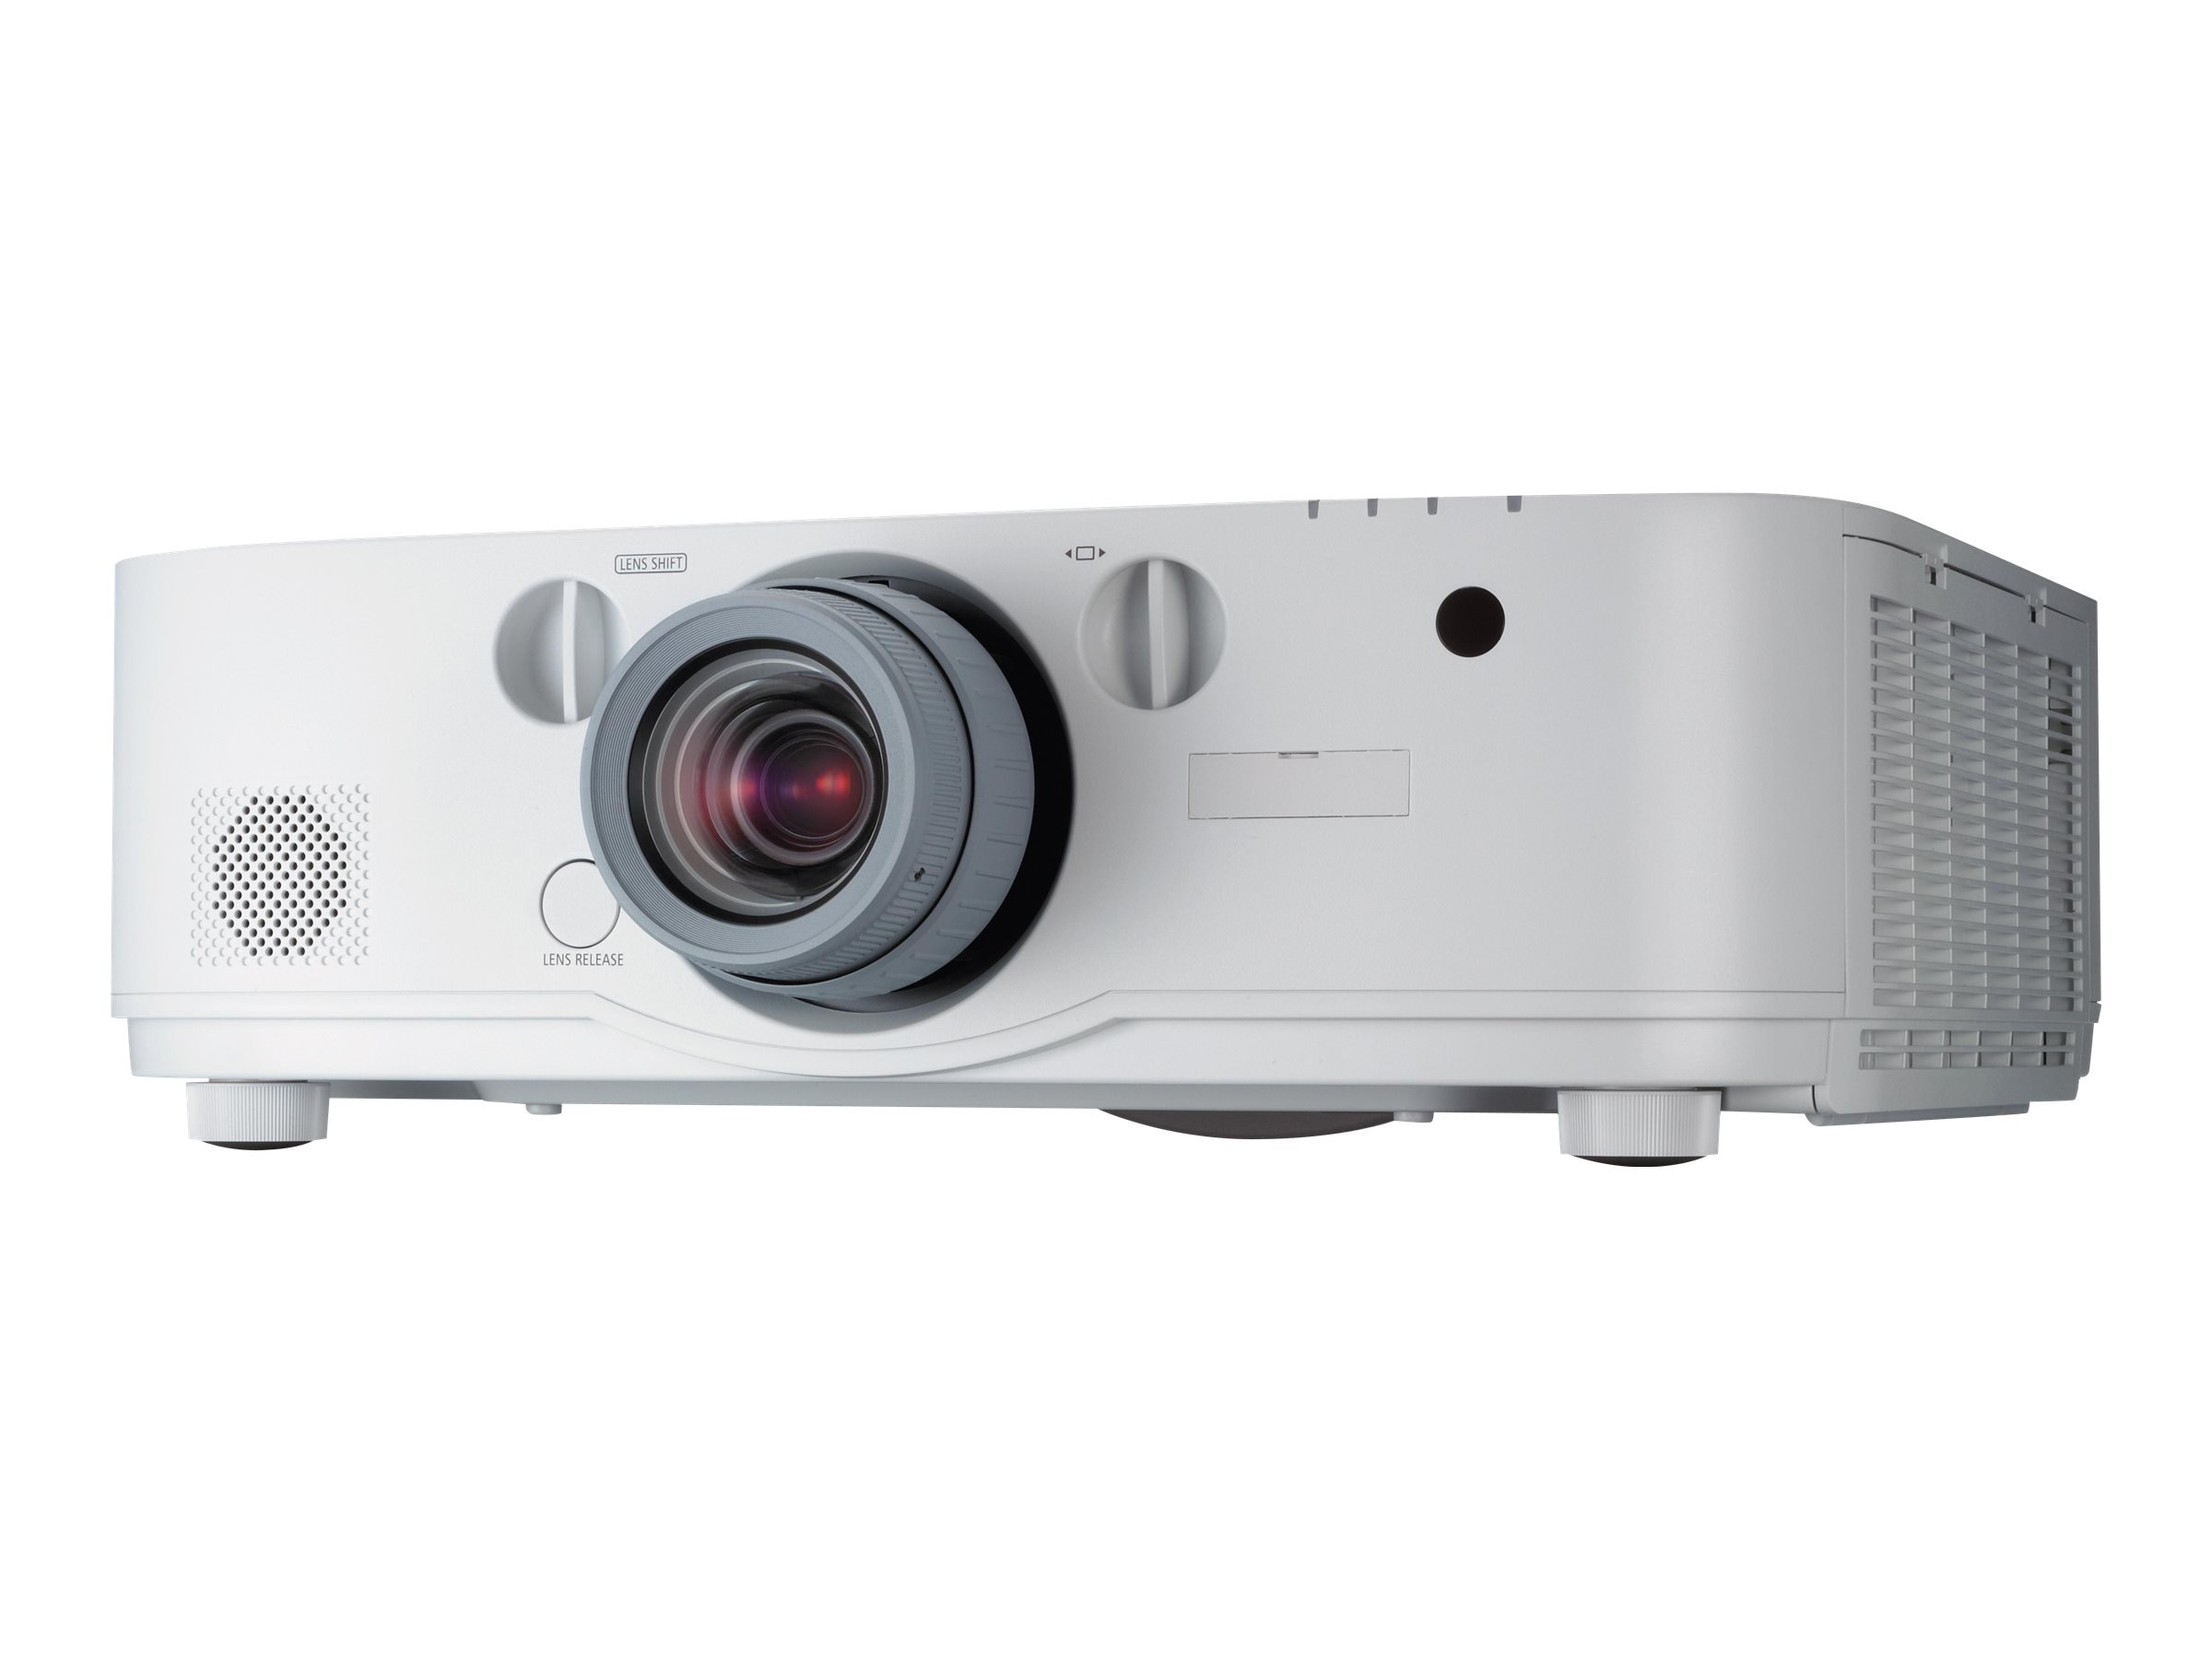 NEC PA571W WUXGA LCD Projector, 5700 Lumens, White with 1.5-3.0:1 Zoom Lens